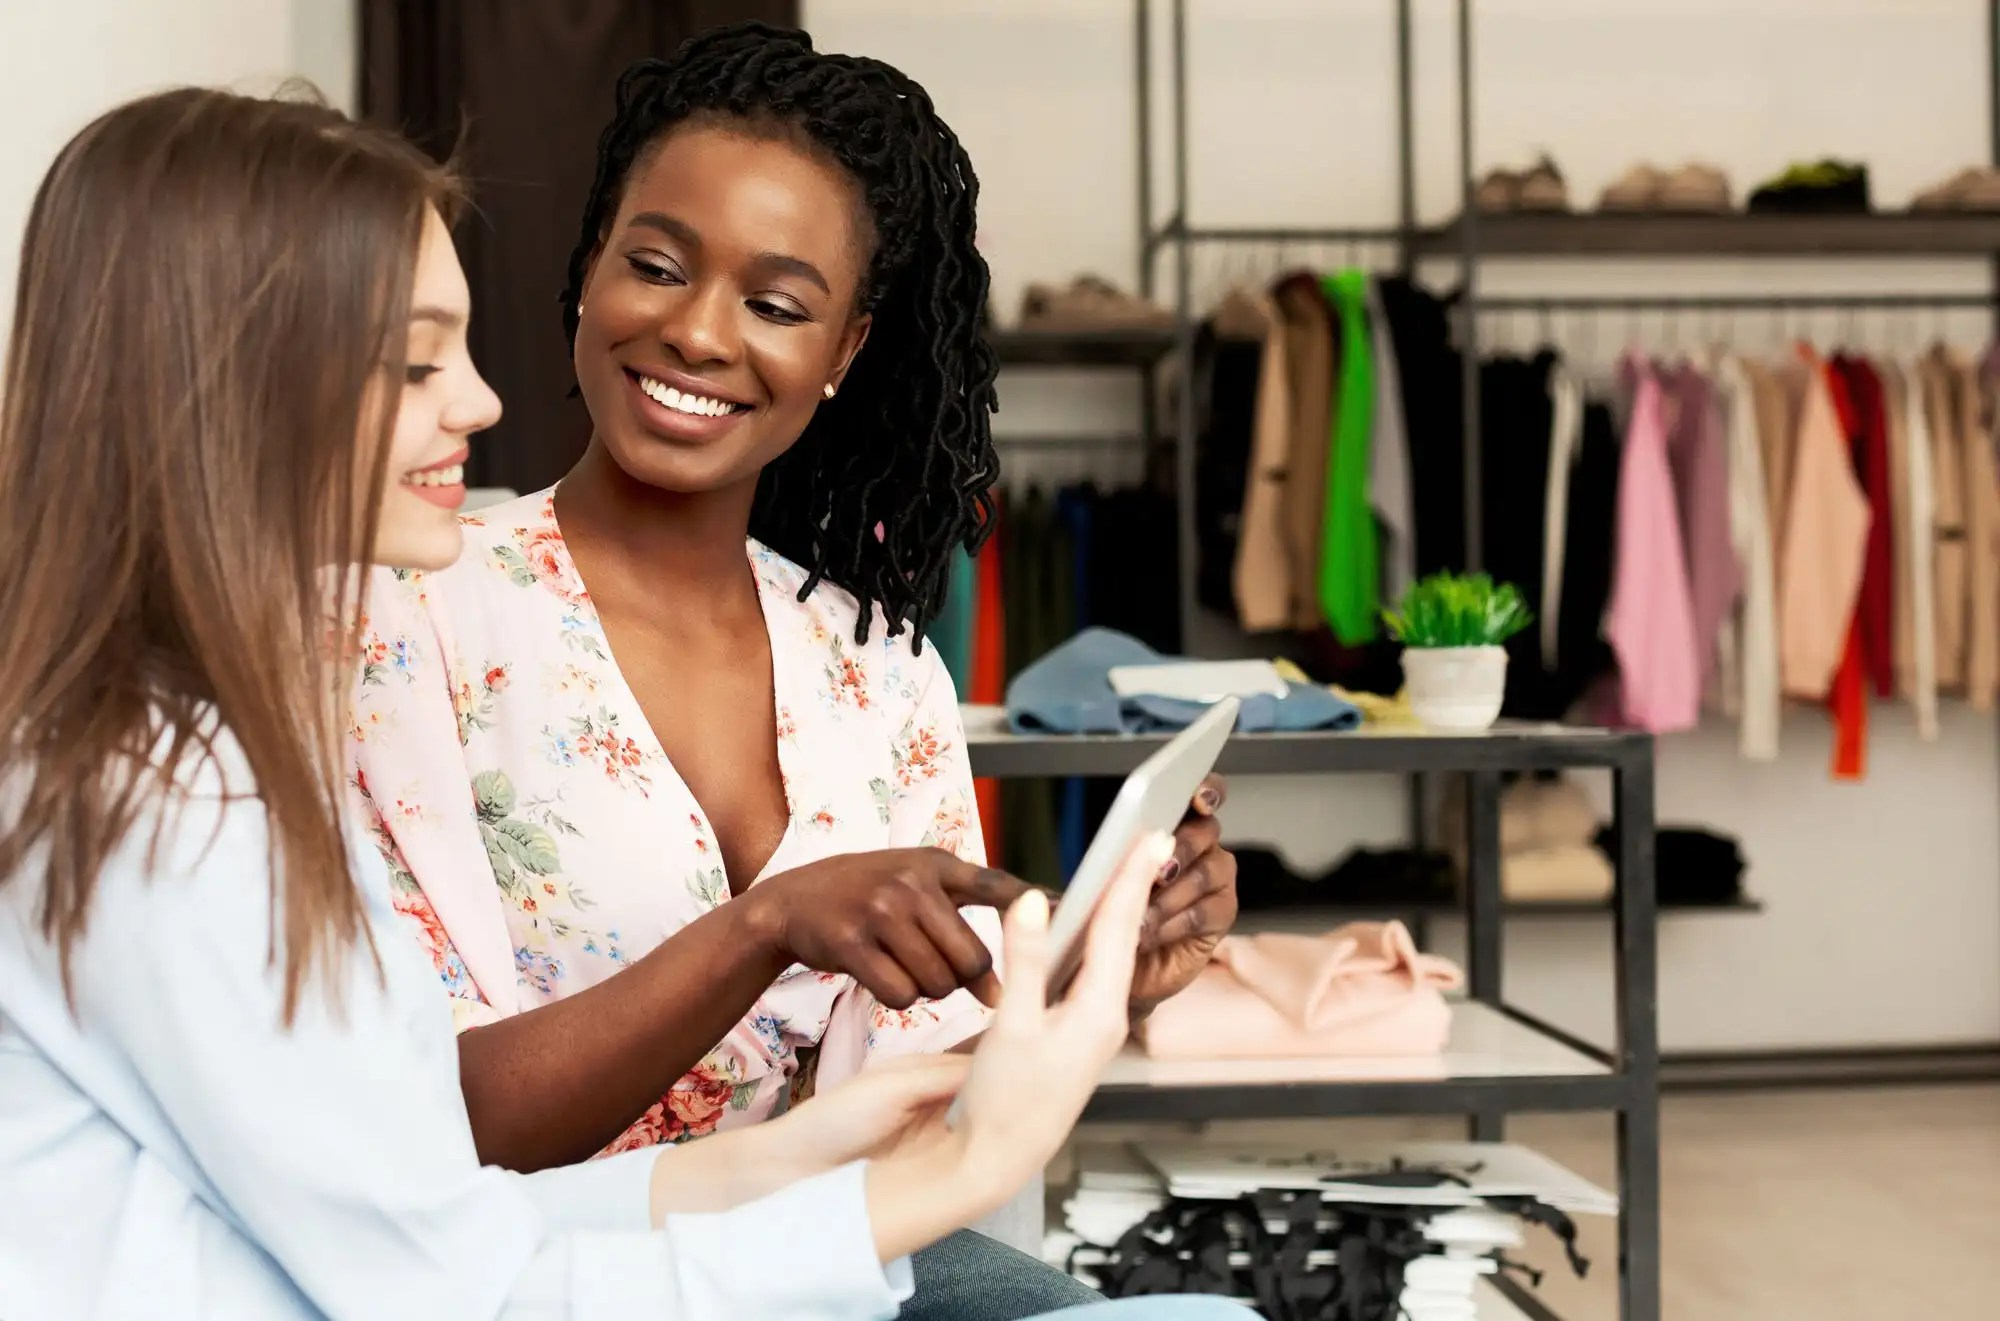 Reasons why you Should Work with a Personal Stylist or Image Consultant